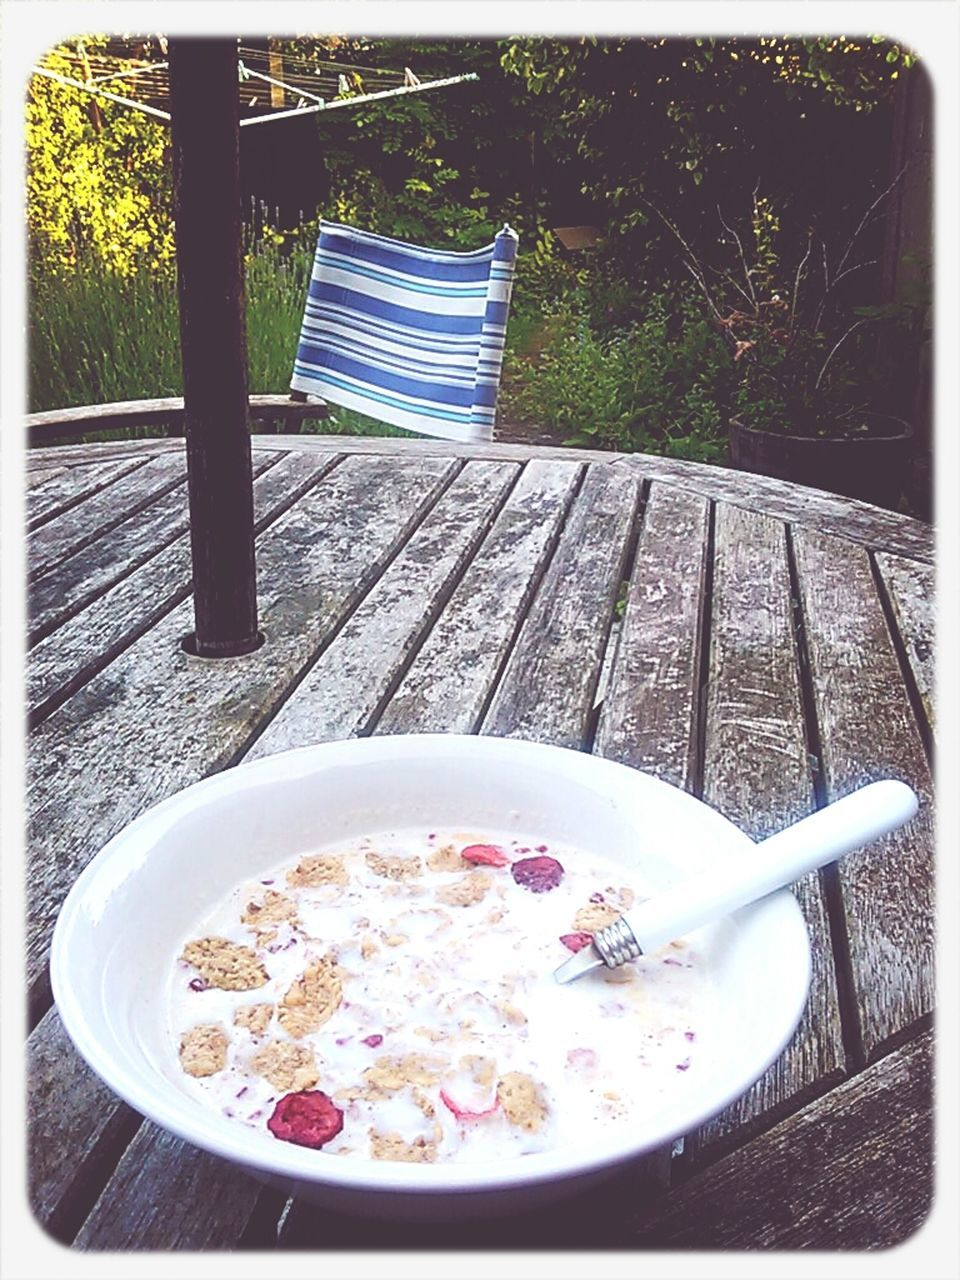 food and drink, food, table, healthy eating, breakfast, bowl, freshness, plate, no people, day, outdoors, drink, tree, ready-to-eat, close-up